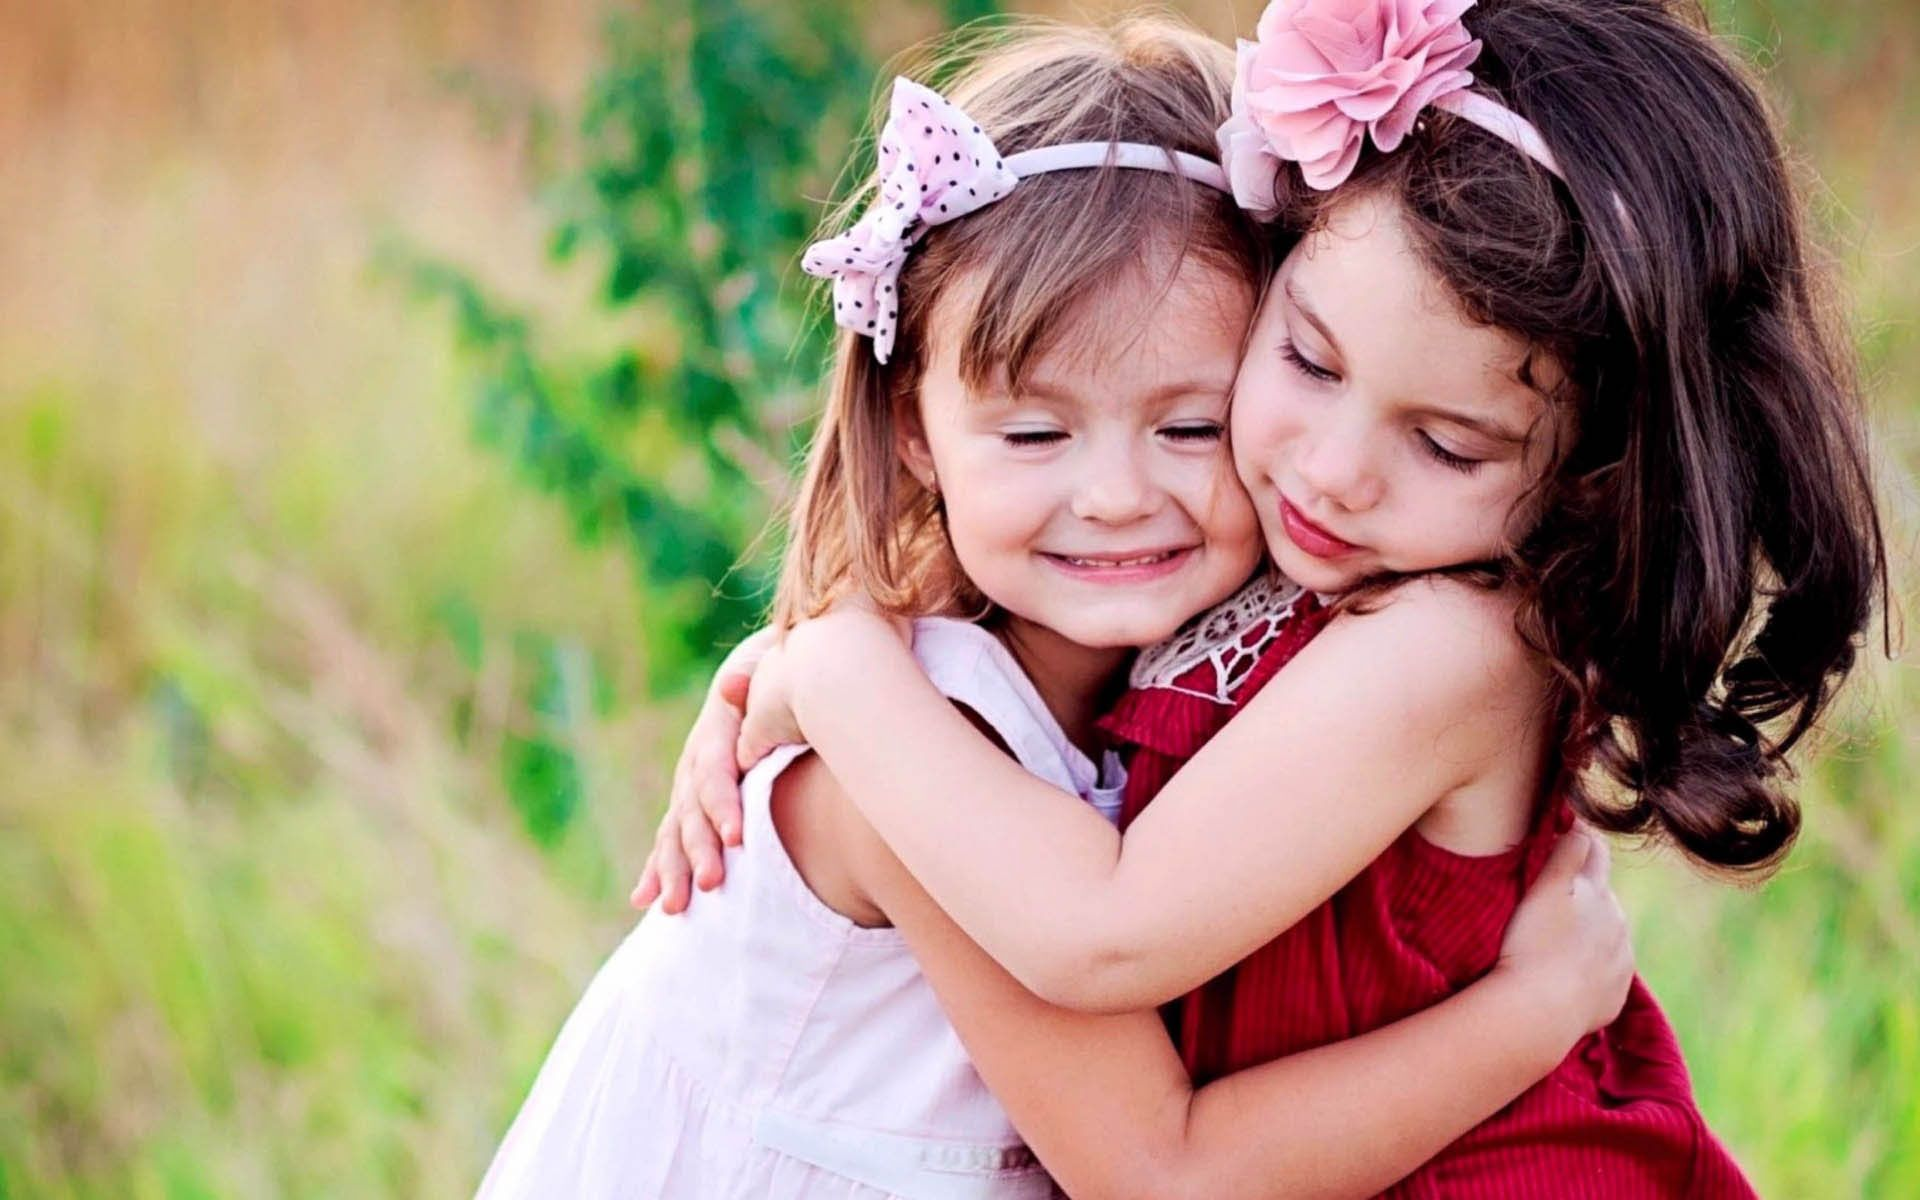 Baby Couple Images Cute Wallpapers Cute Baby Wallpaper Friend